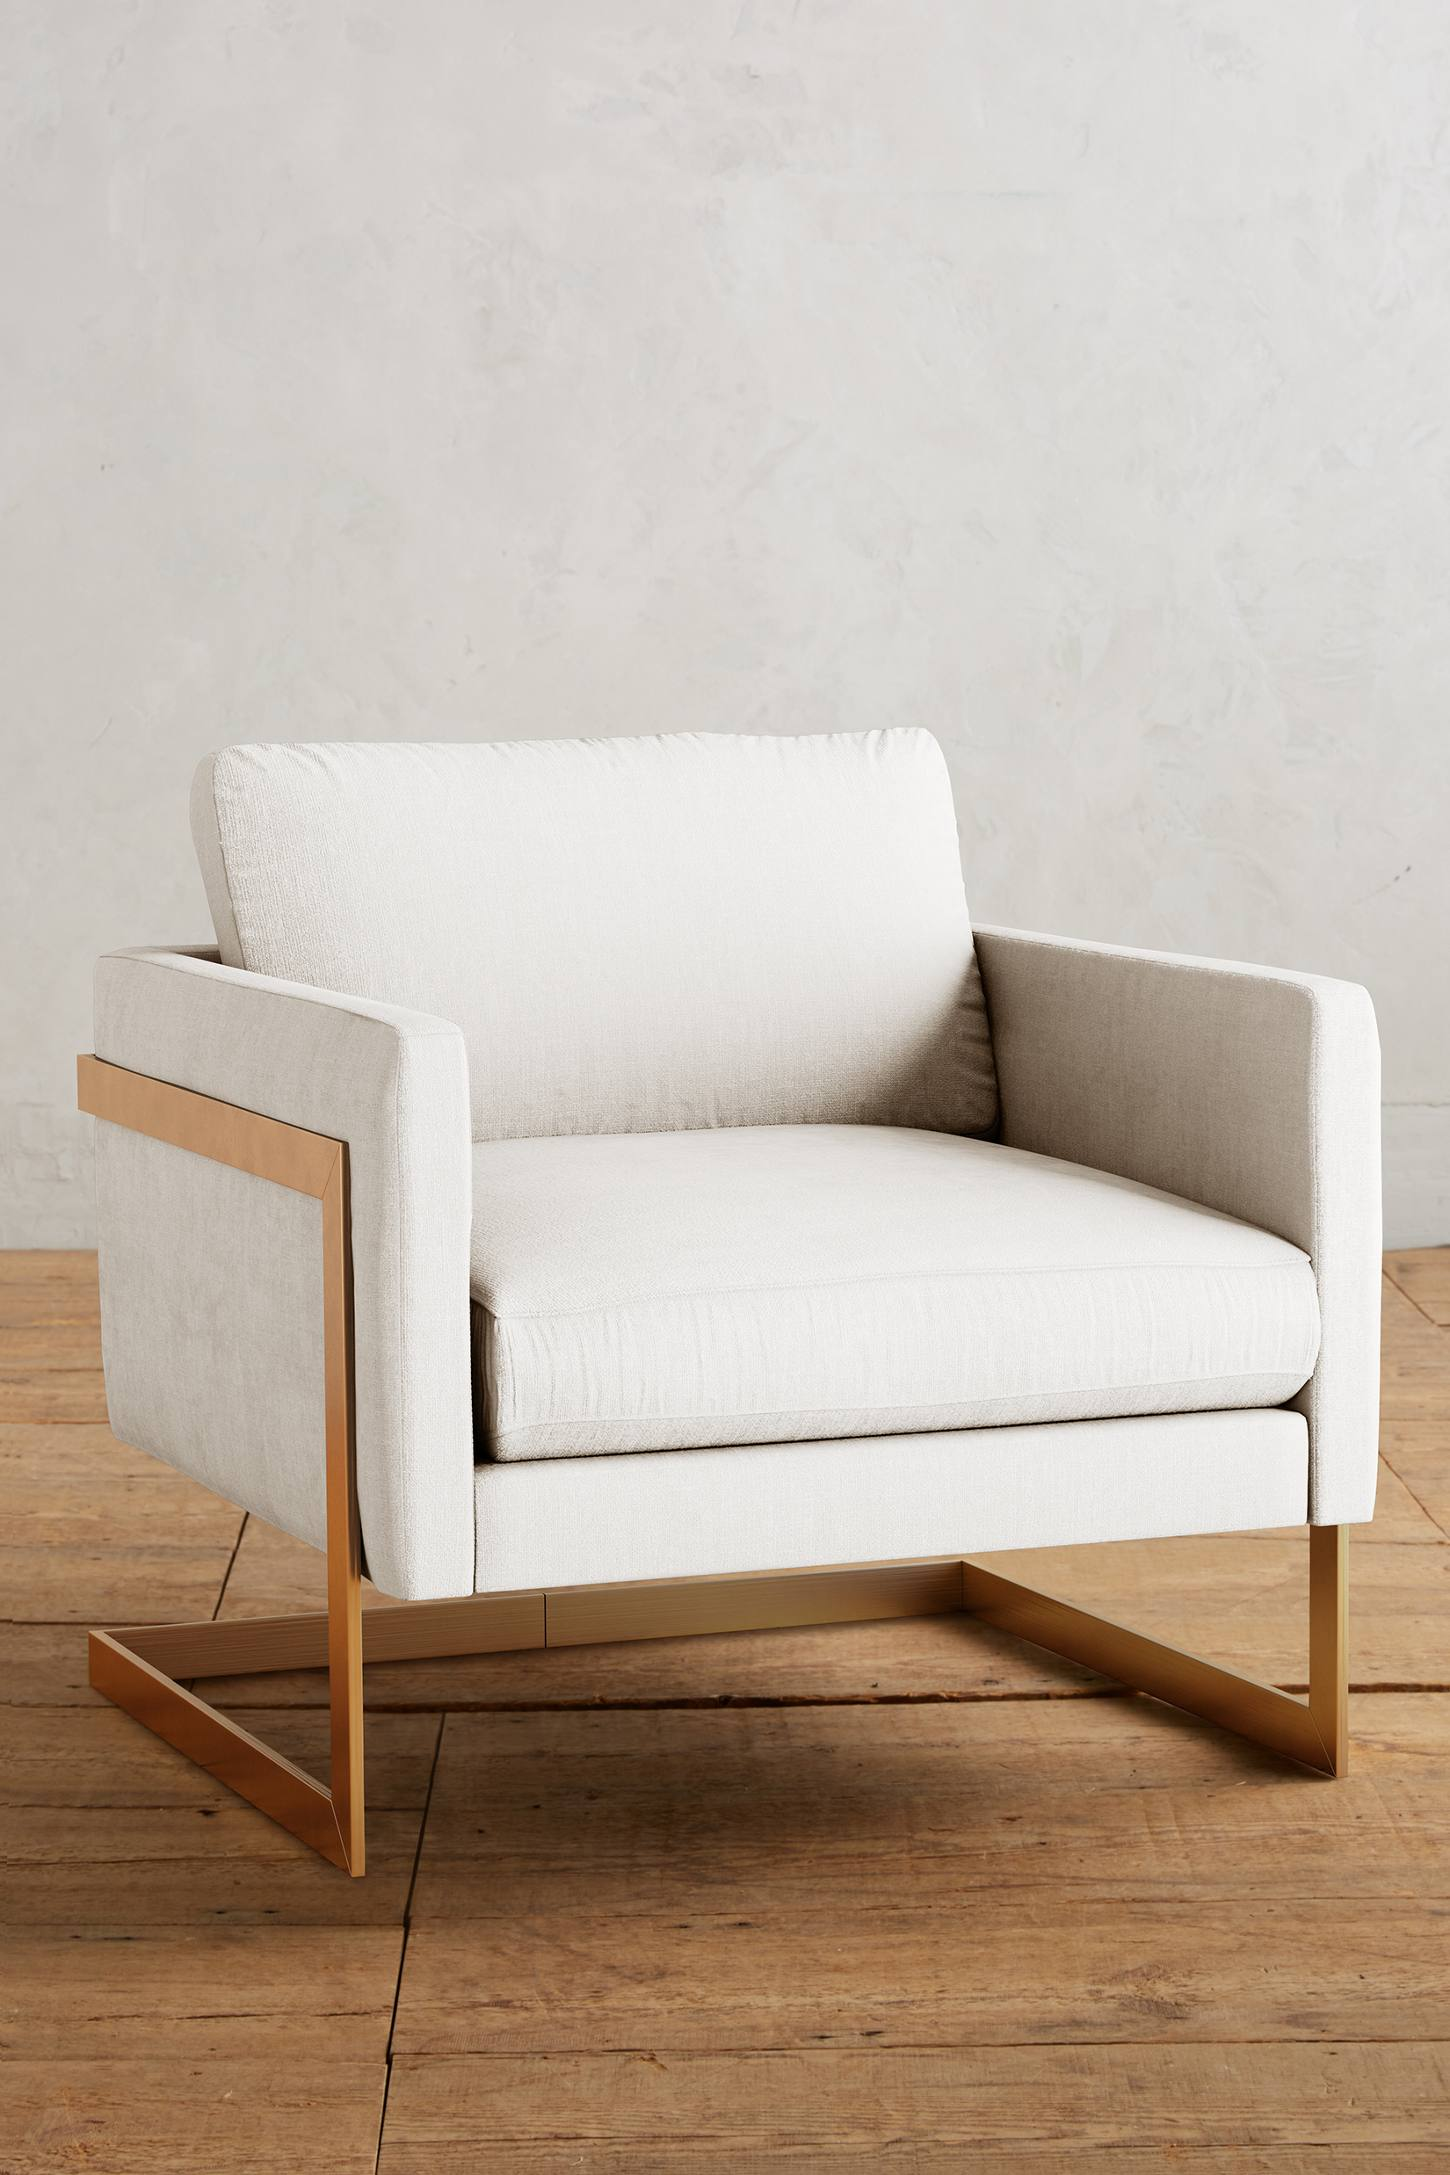 Slide View: 1: Belgian Linen Meredith Chair